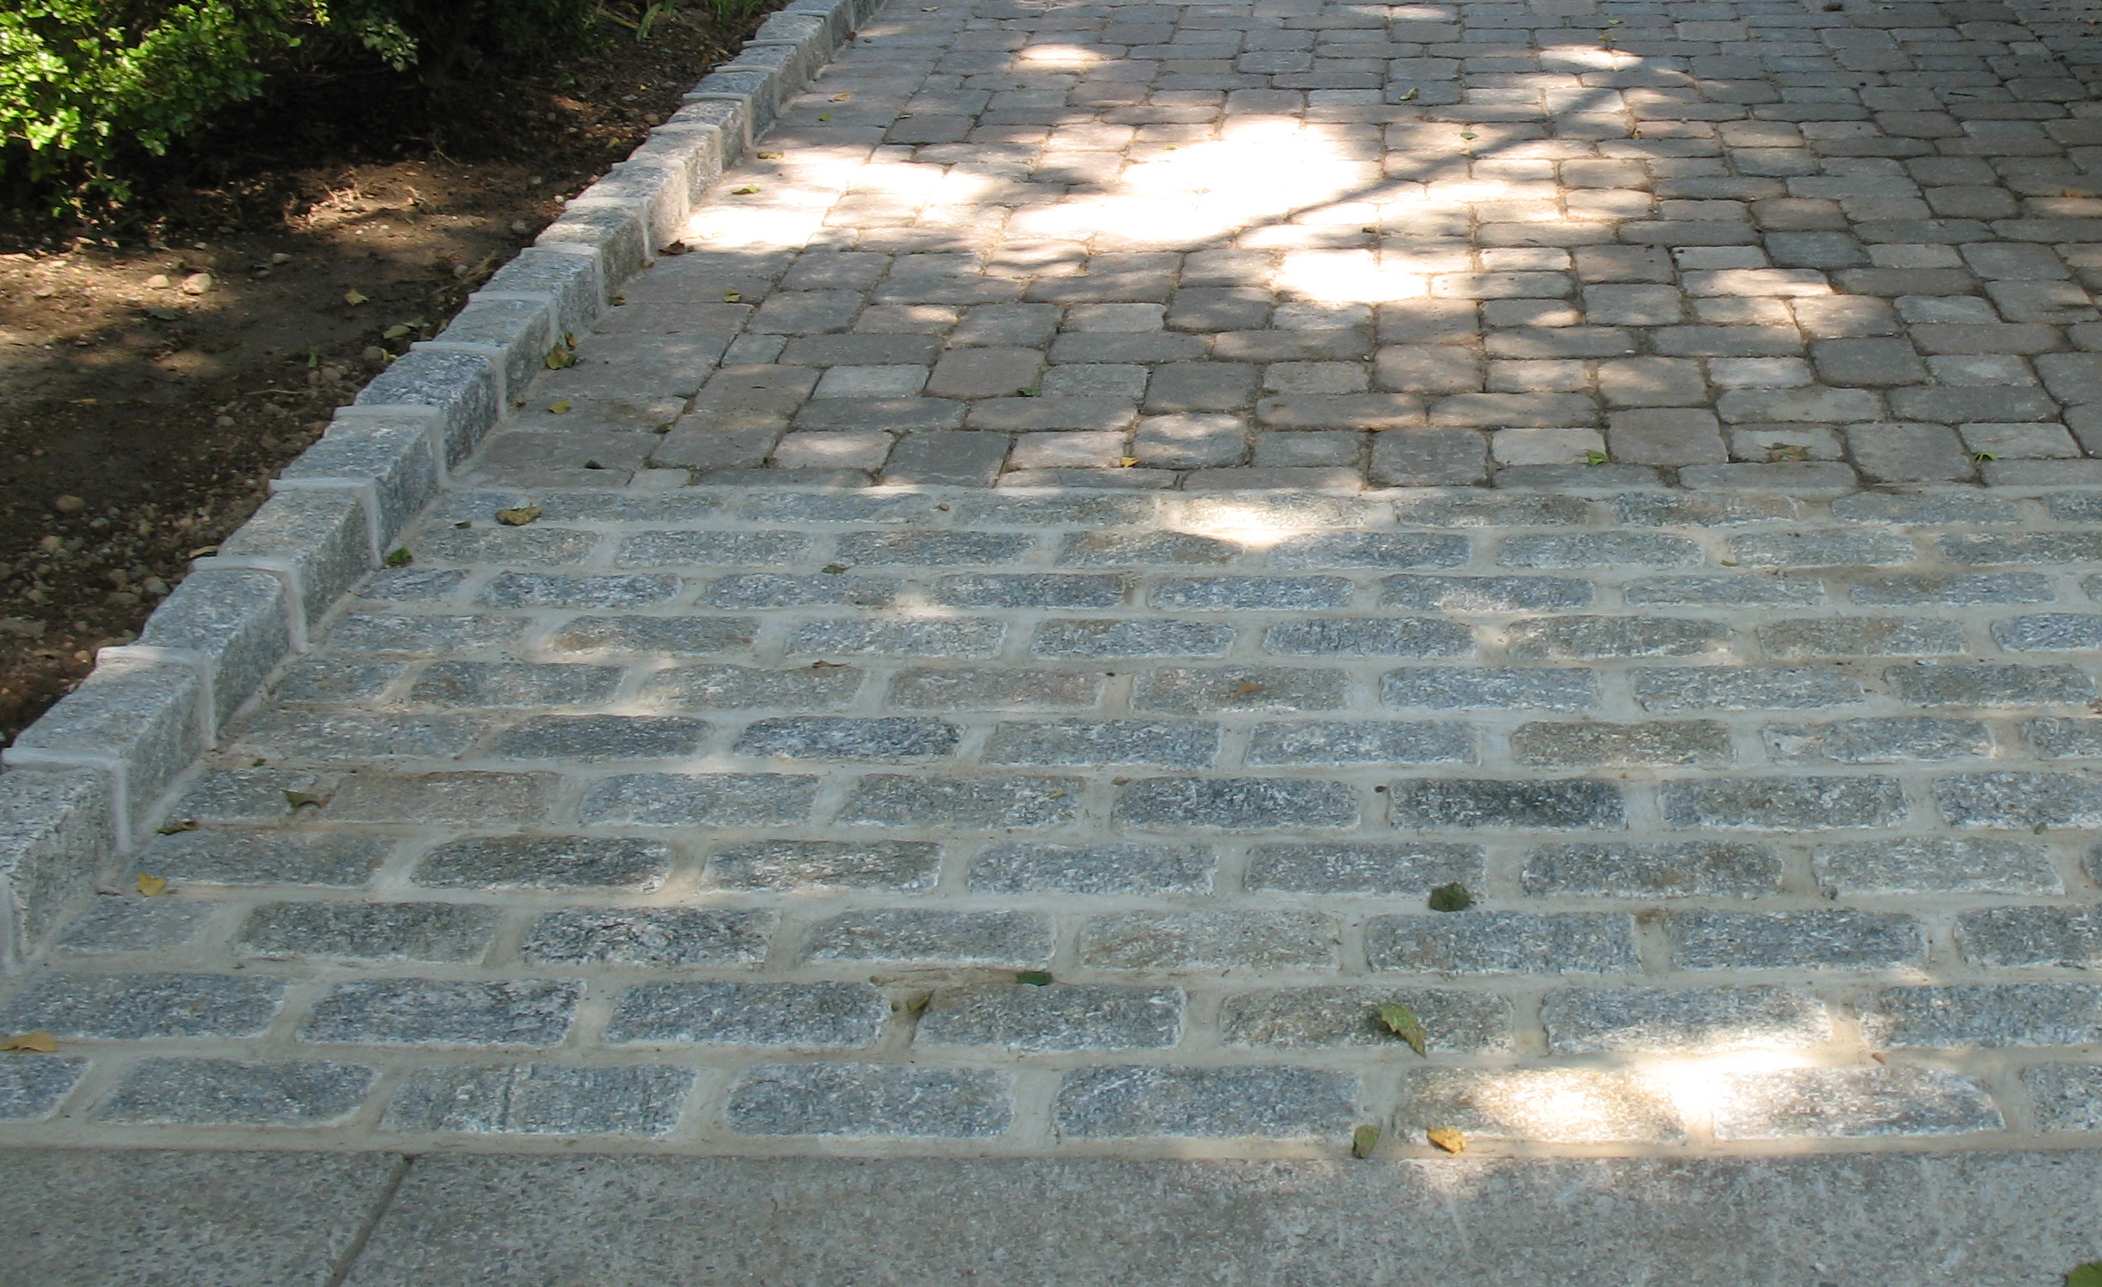 paving stone driveway with cobblestone apron and belgium block curbing